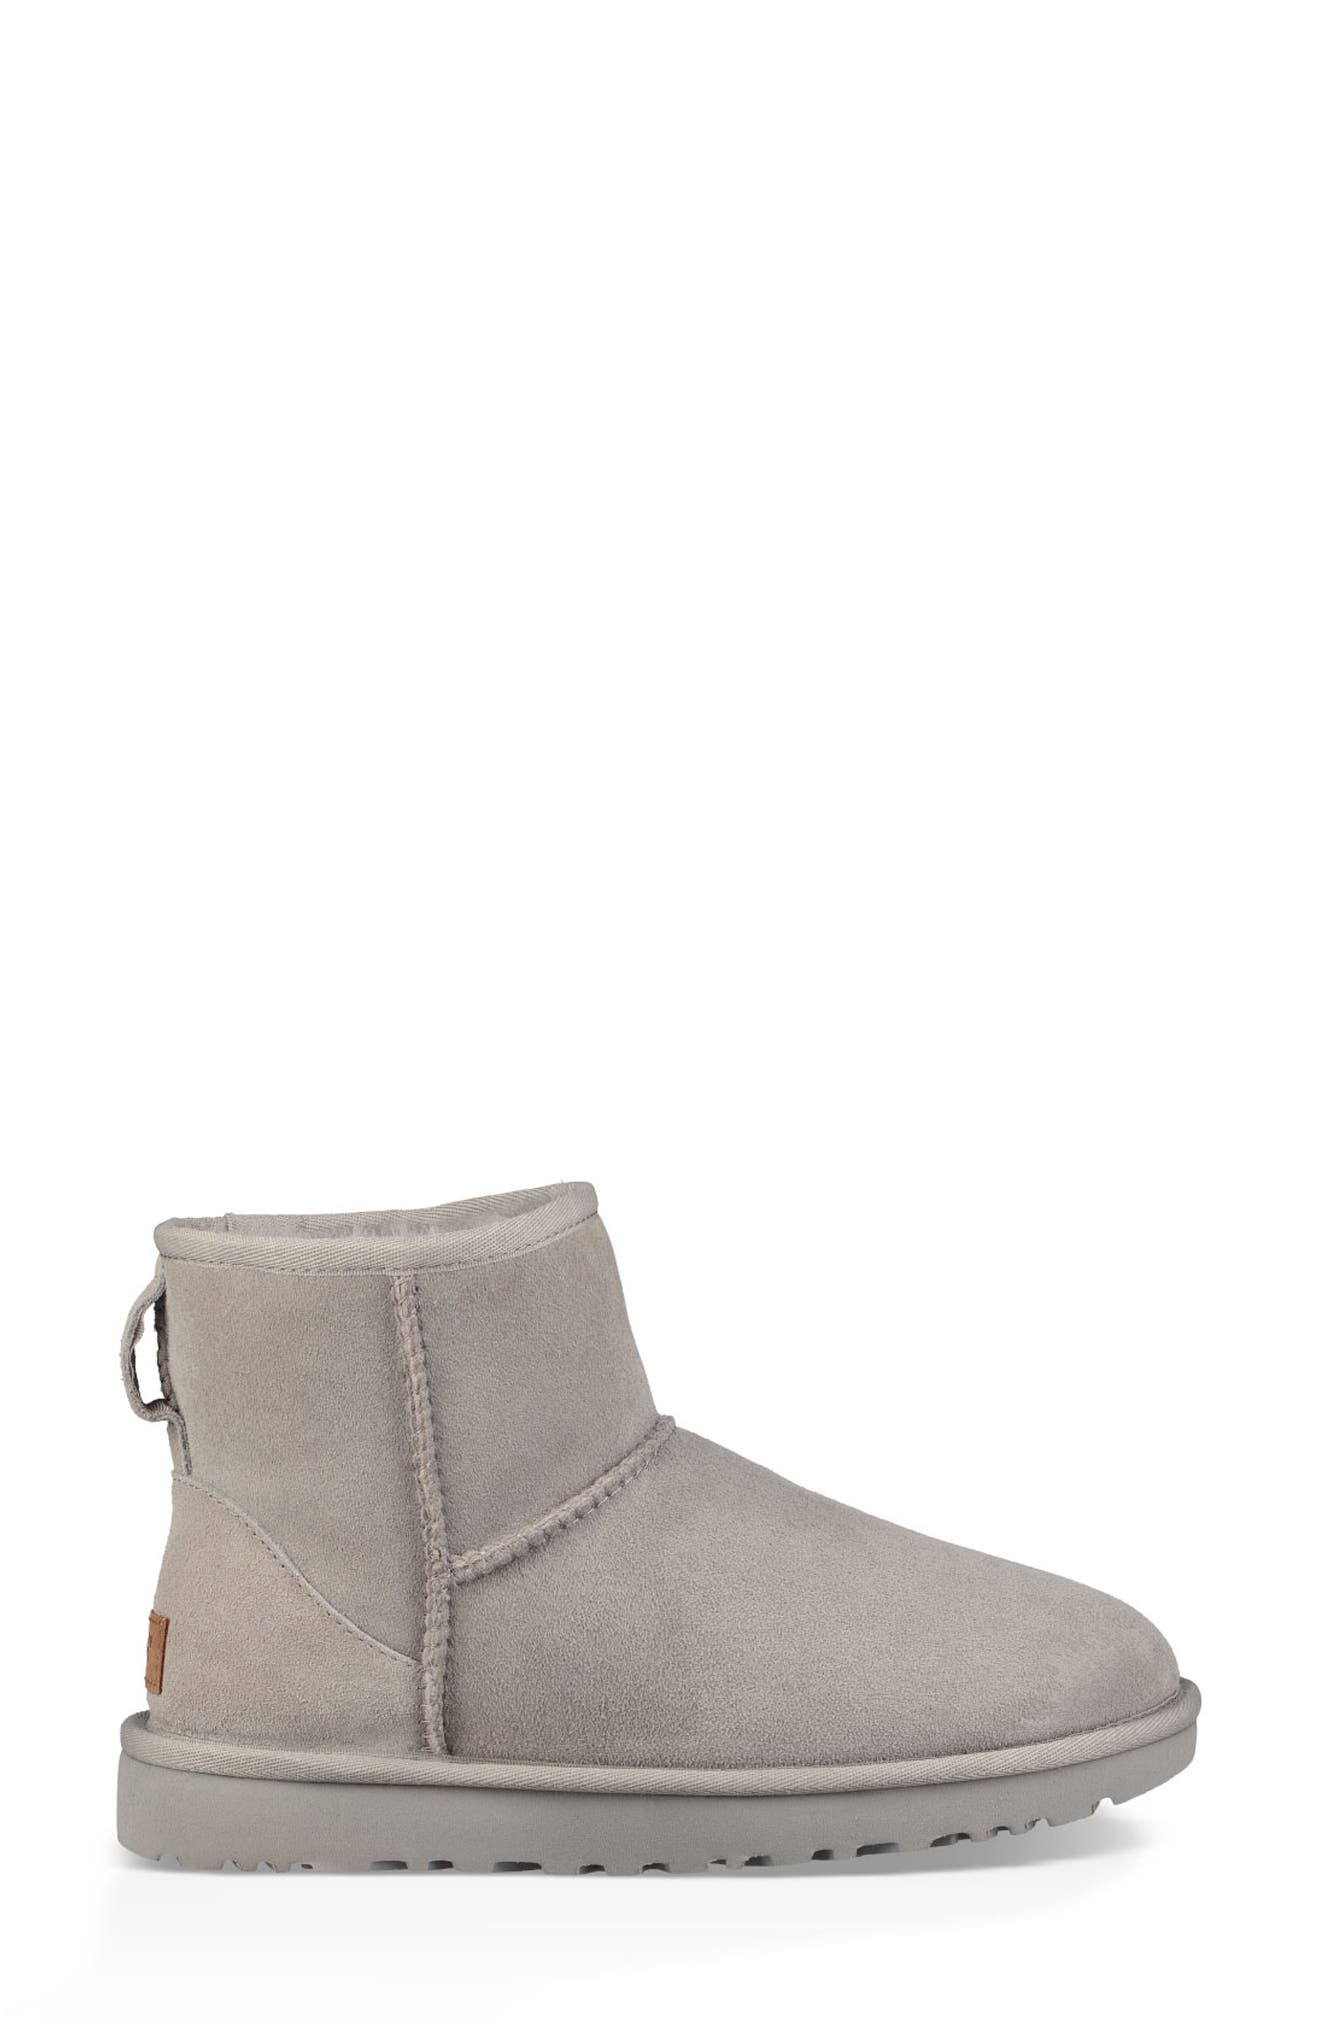 'Classic Mini II' Genuine Shearling Lined Boot,                             Alternate thumbnail 3, color,                             SEAL SUEDE